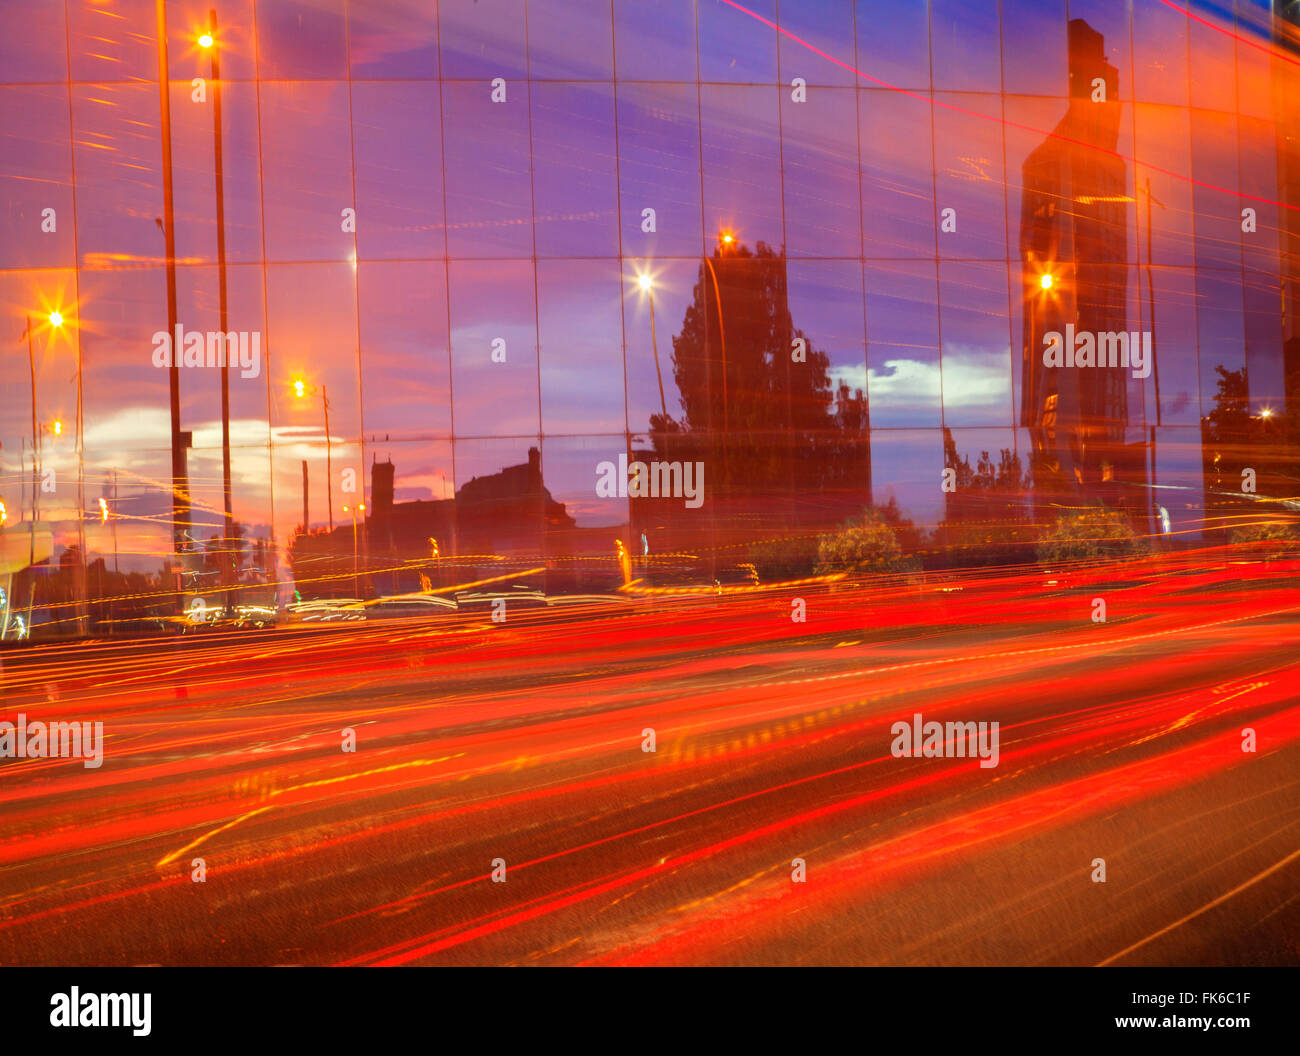 Car tail lights streaming past mirrored building, Liverpool, Merseyside, England, United Kingdom, Europe - Stock Image